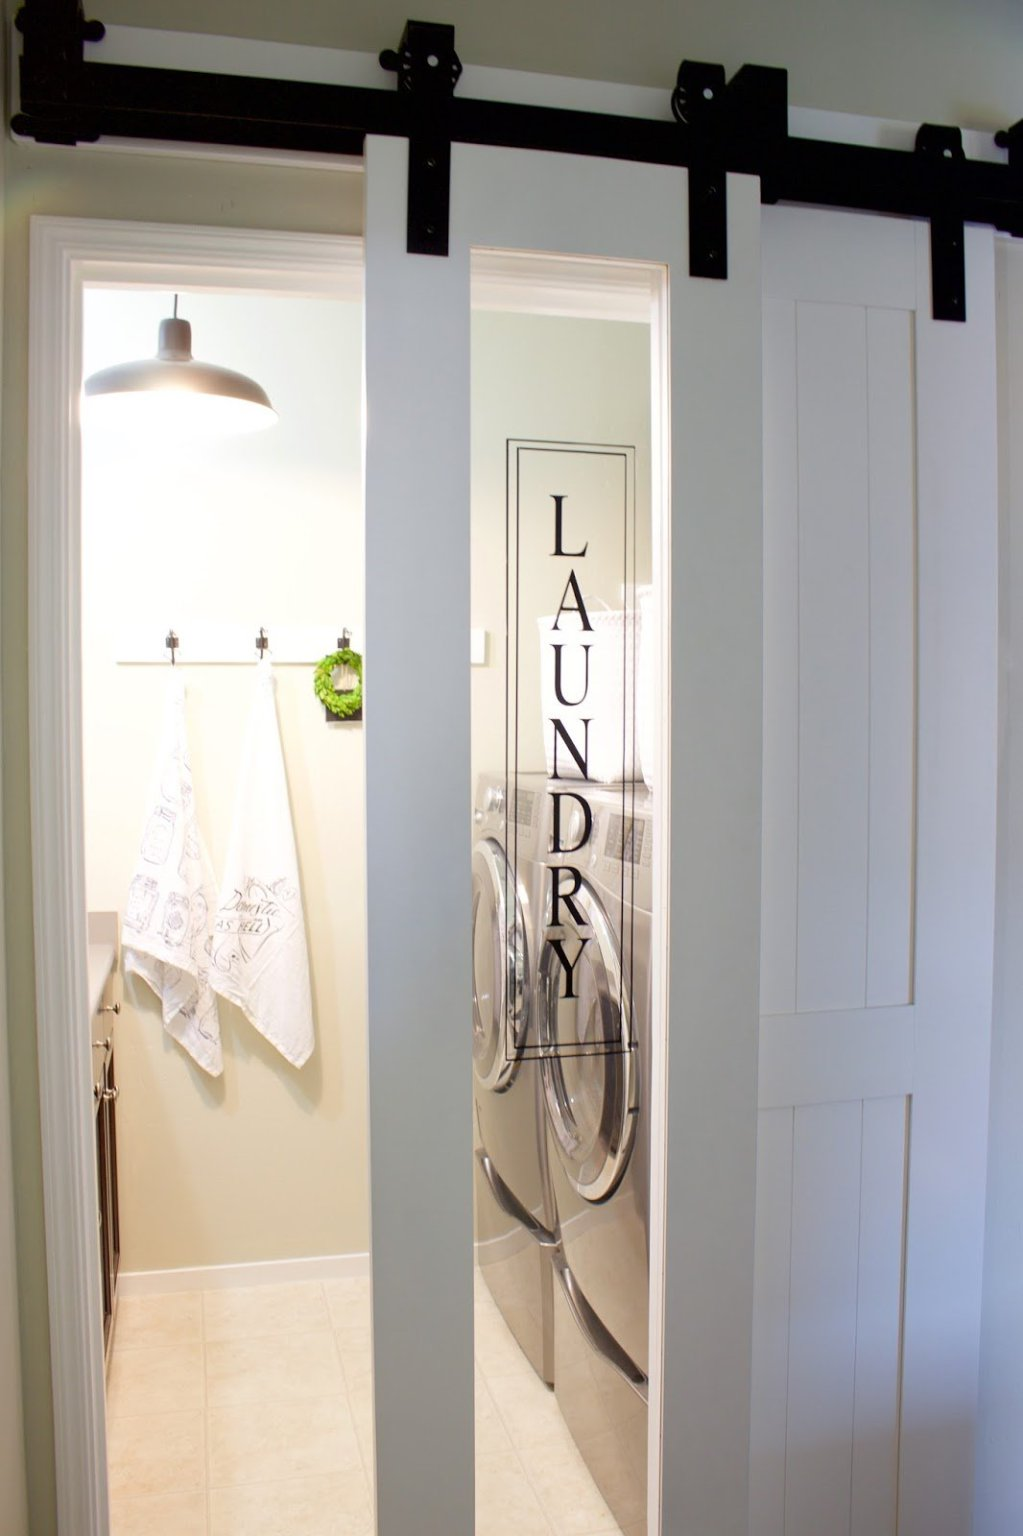 Skinny Laundry Room Barn Door & 27 Awesome Sliding Barn Door Ideas for the Home - Homelovr